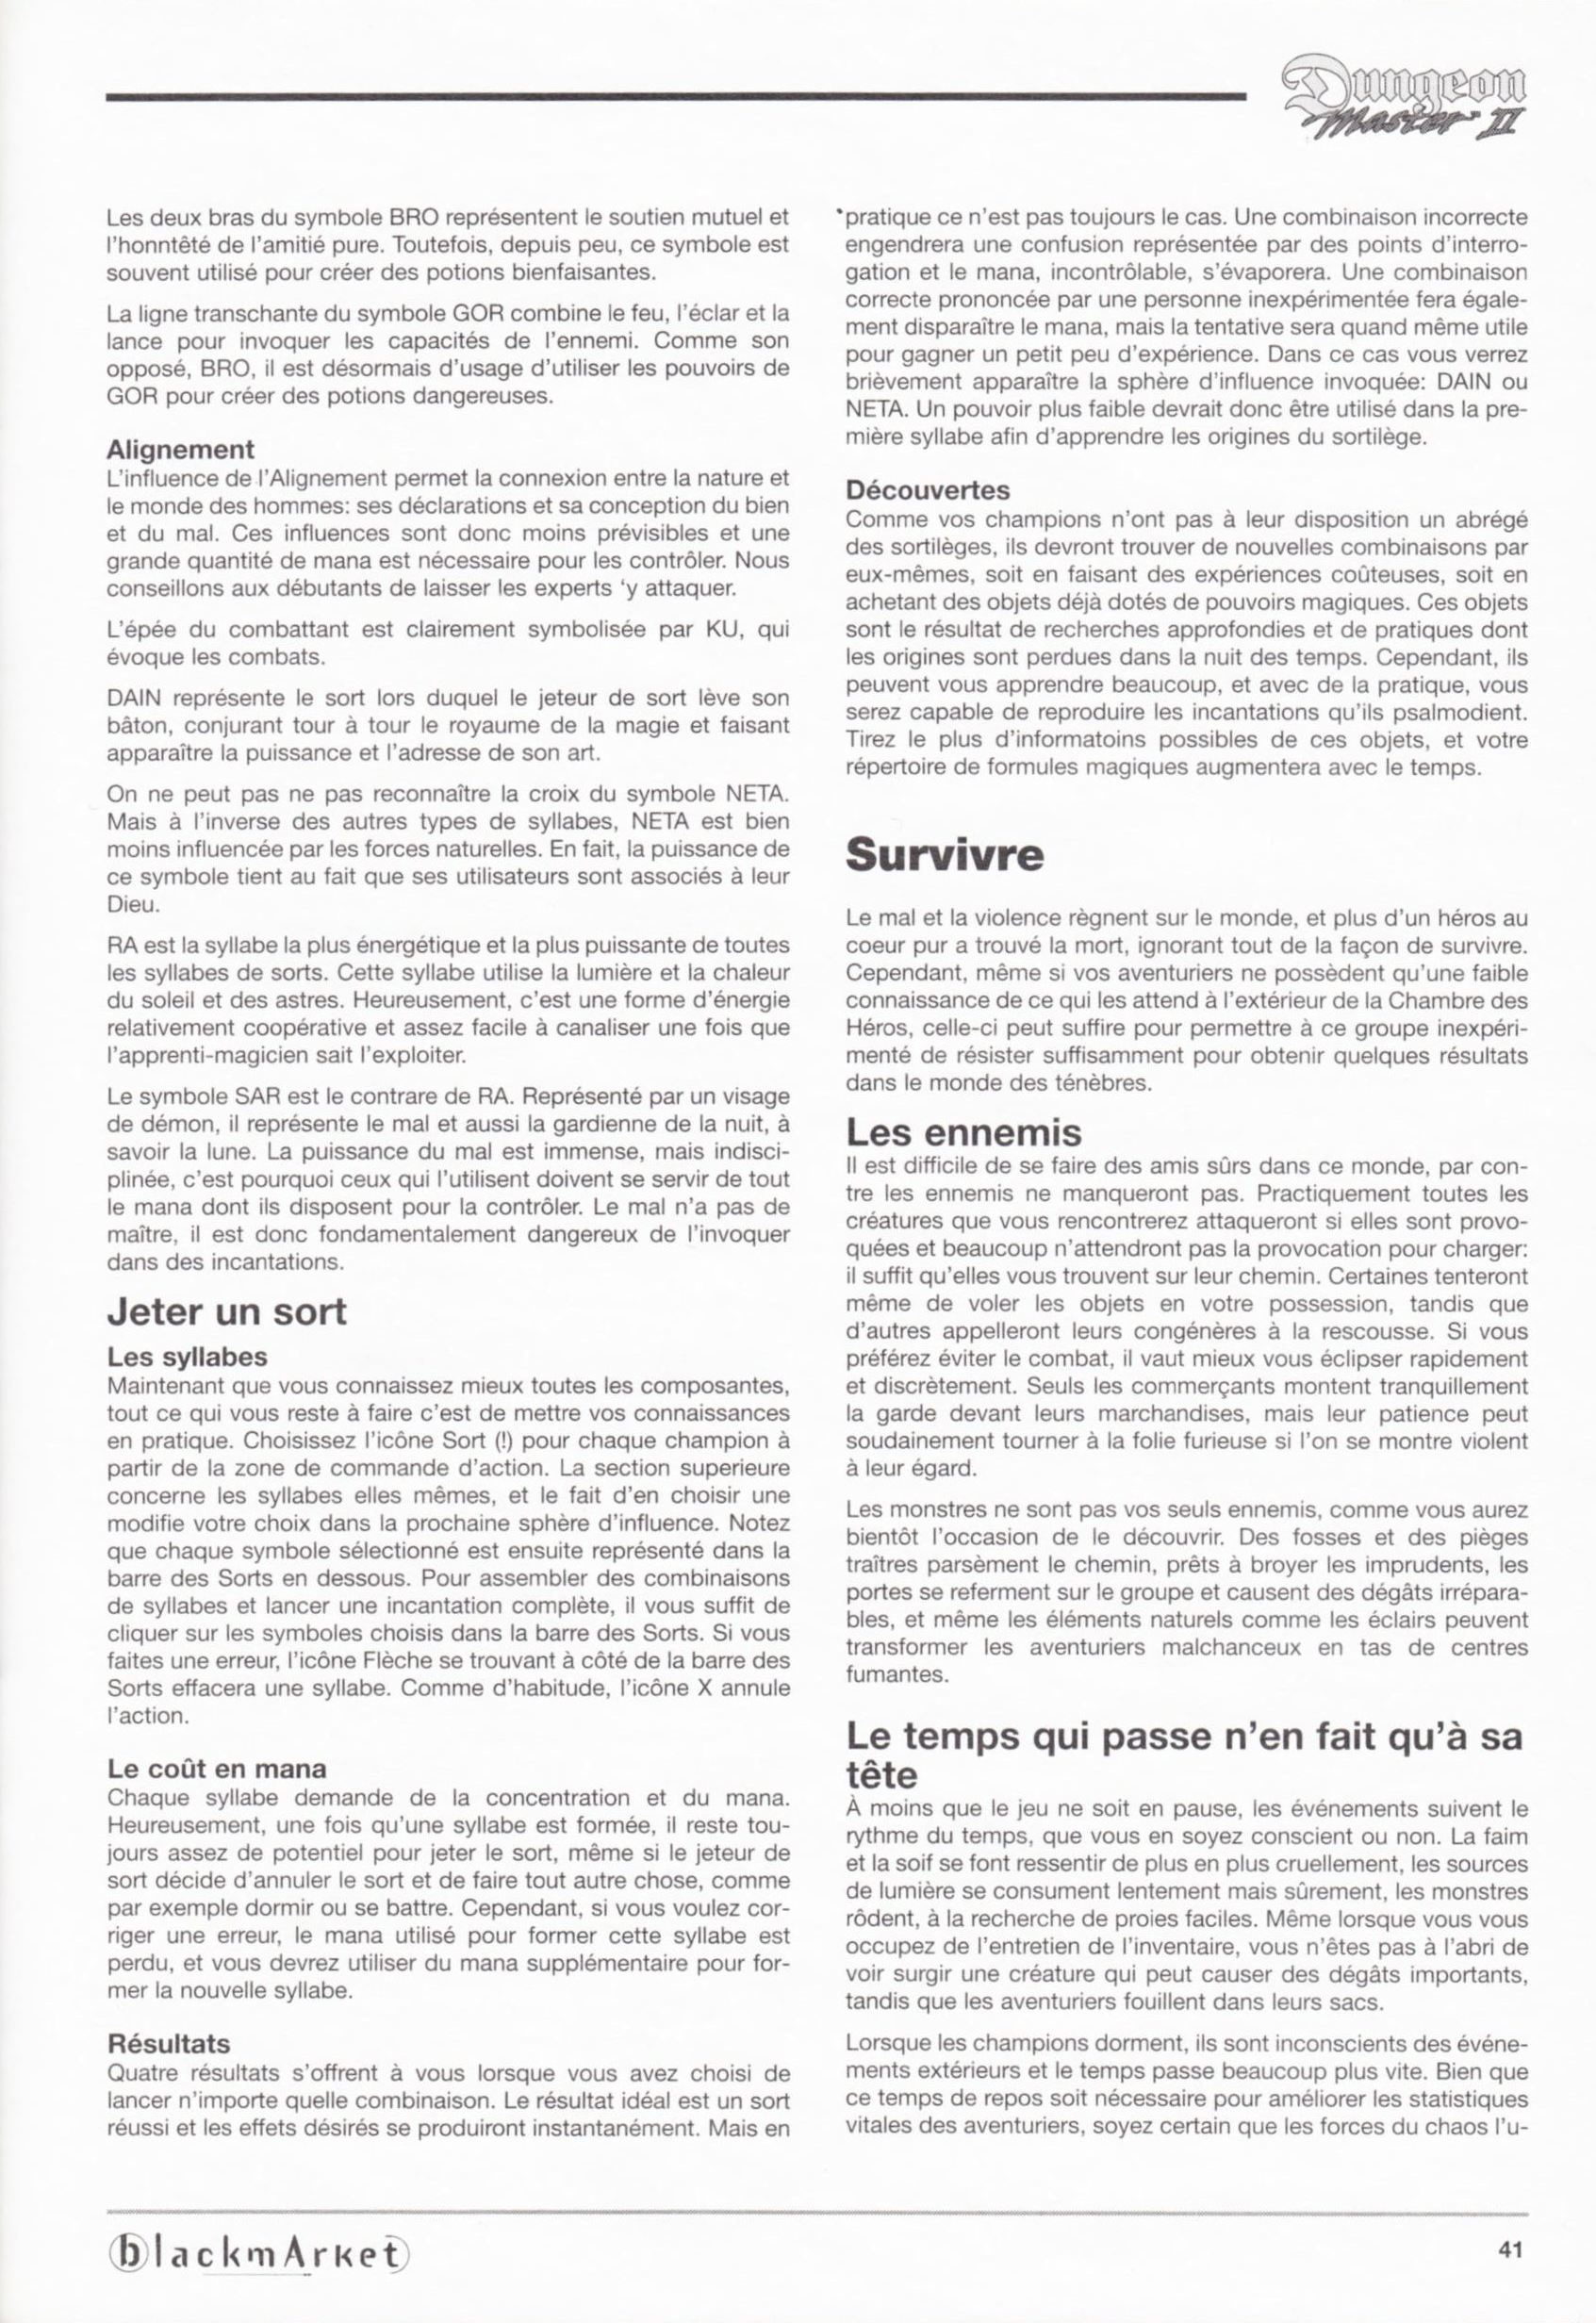 Game - Dungeon Master II - DE - PC - Blackmarket With Manual - Manual - Page 043 - Scan